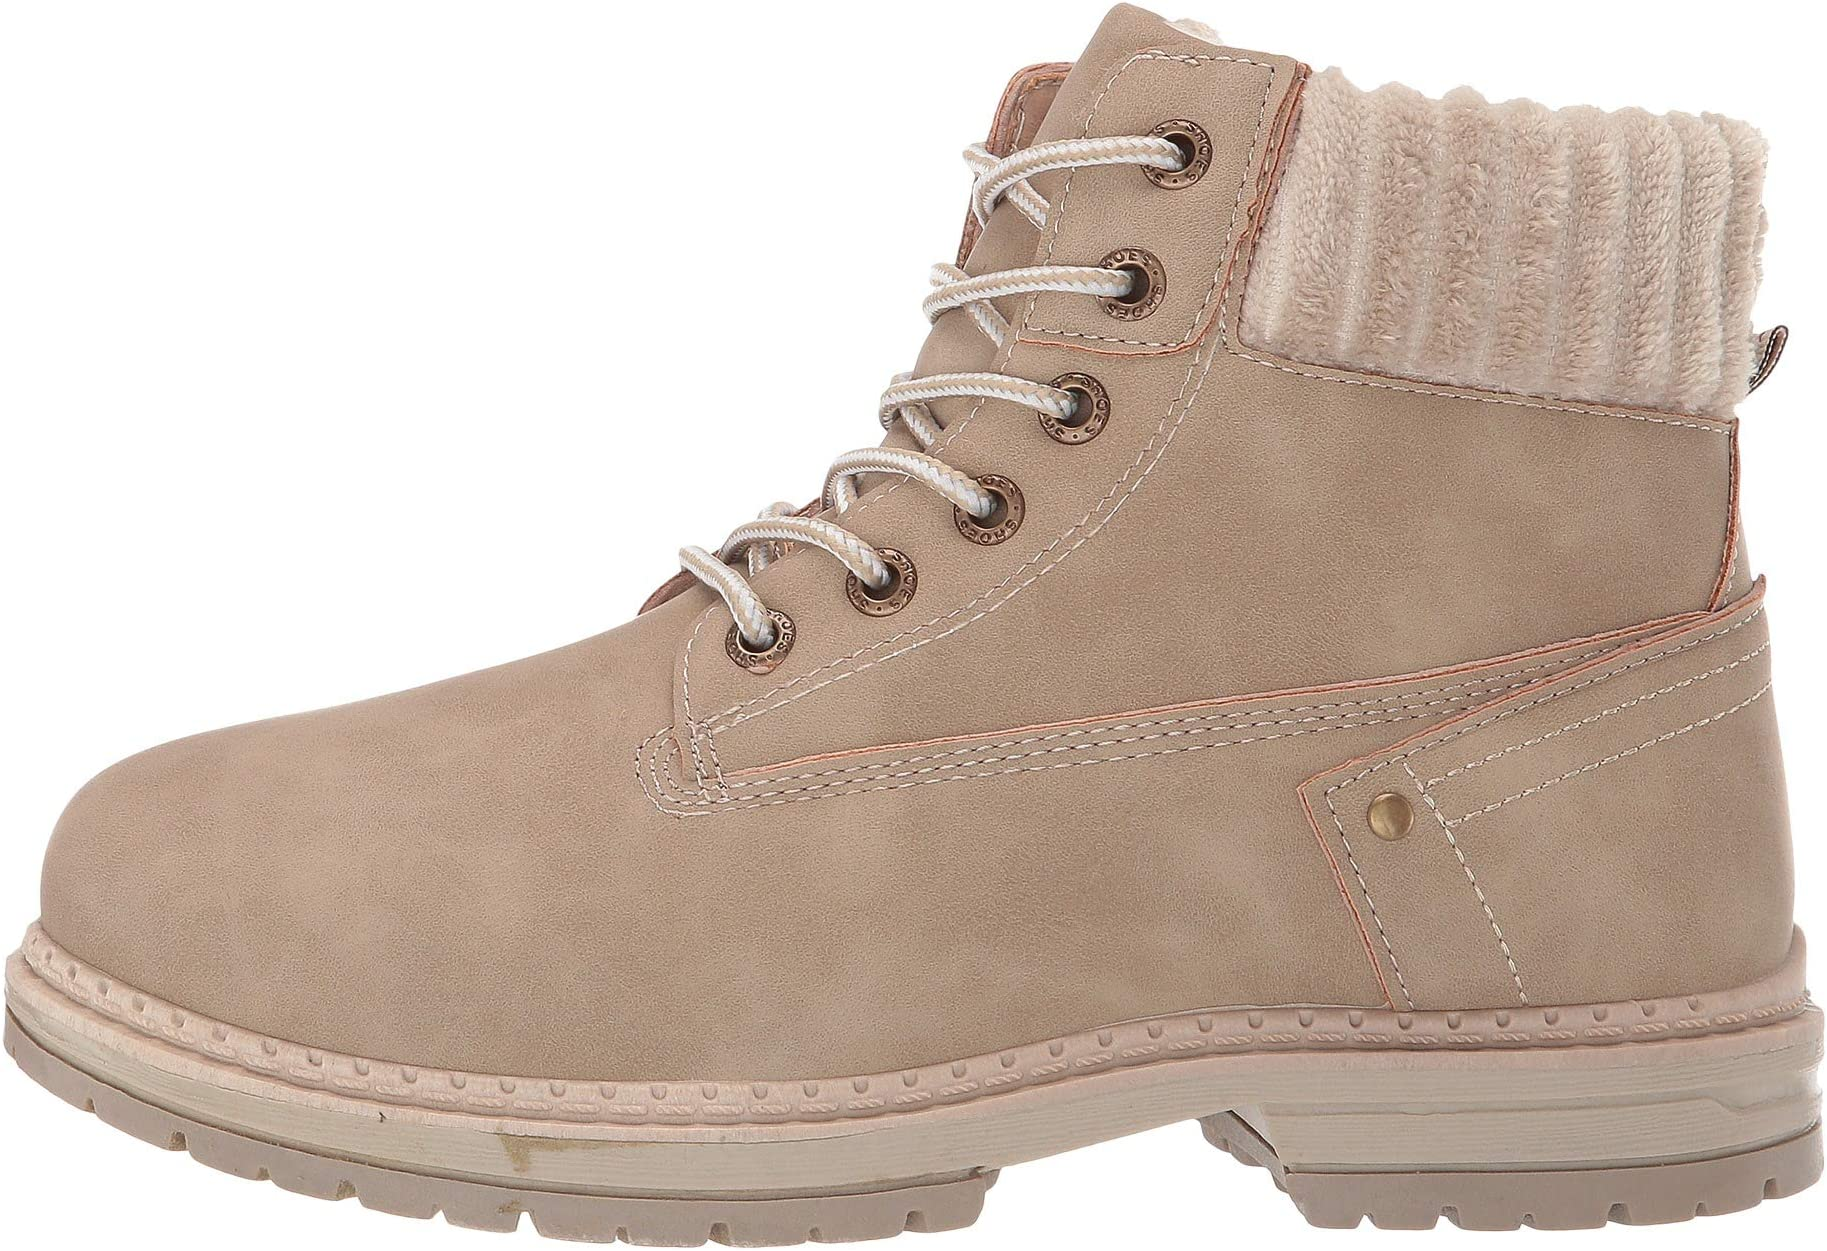 Dirty Laundry Alpine | Women's shoes | 2020 Newest